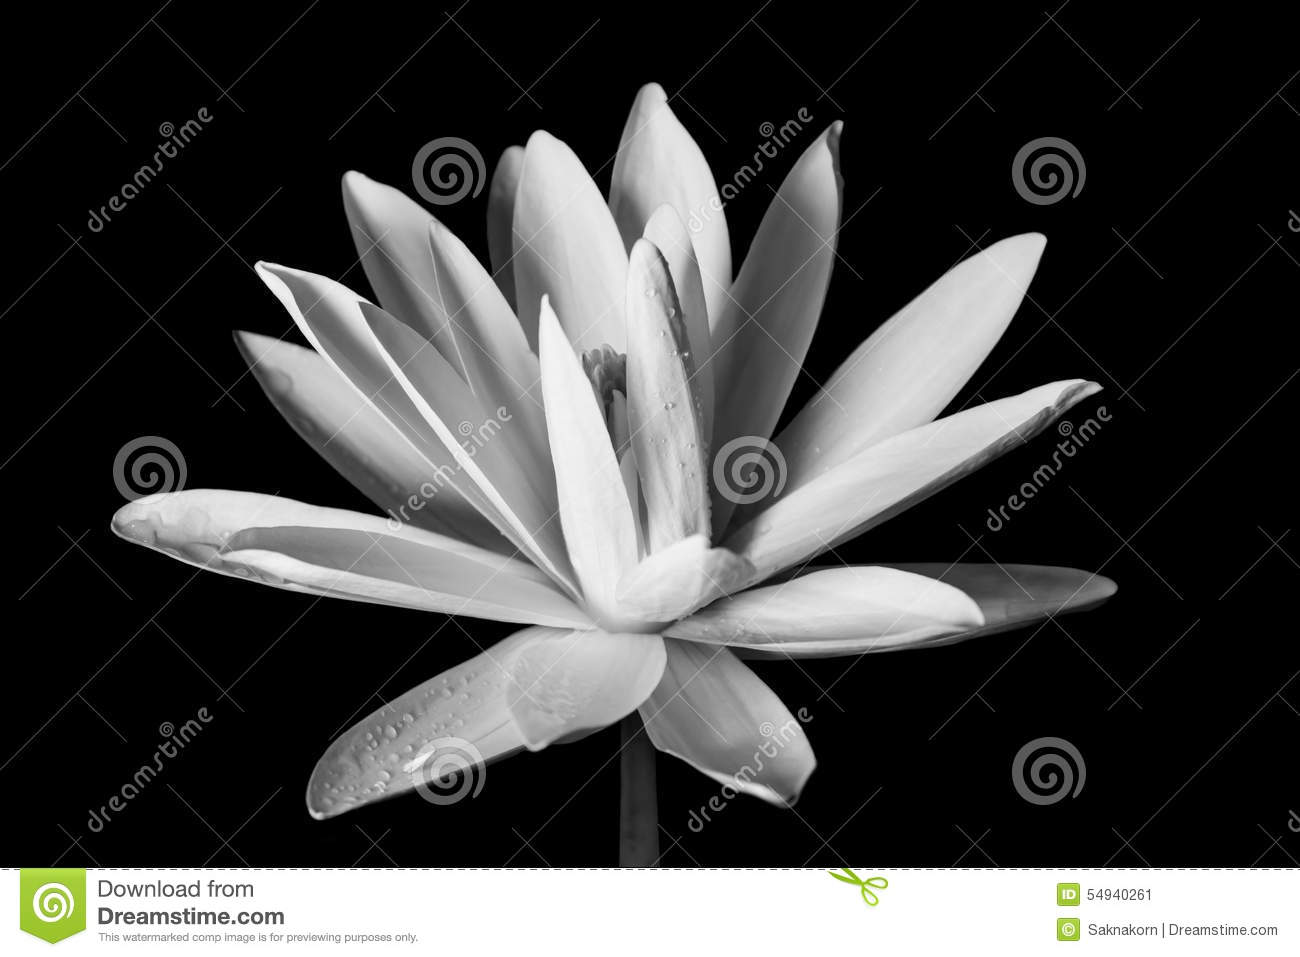 Lotus flower stock image image of beauty black peace 54940261 lotus flower in black and white style mightylinksfo